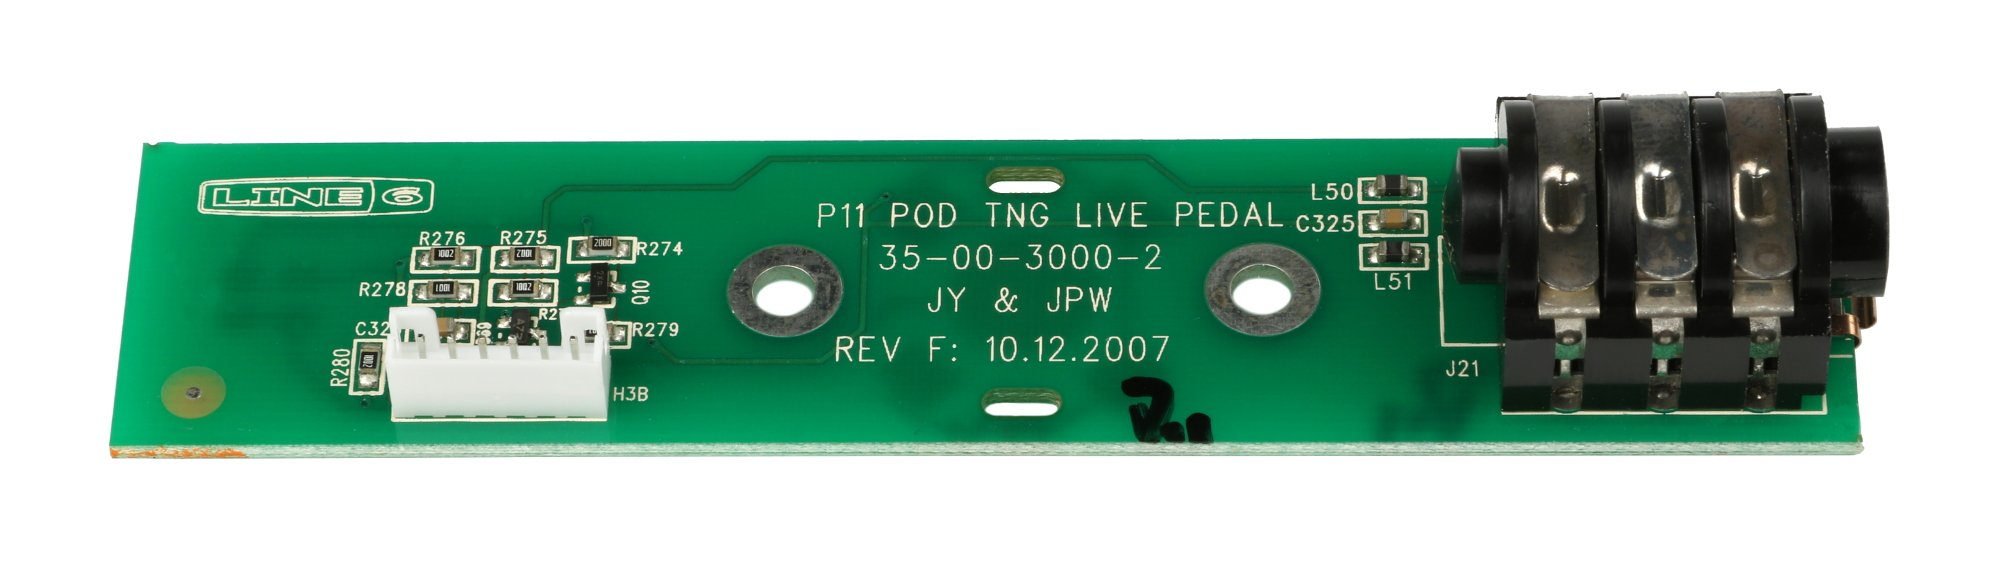 Pedal PCB Assembly for Pod X3 Live